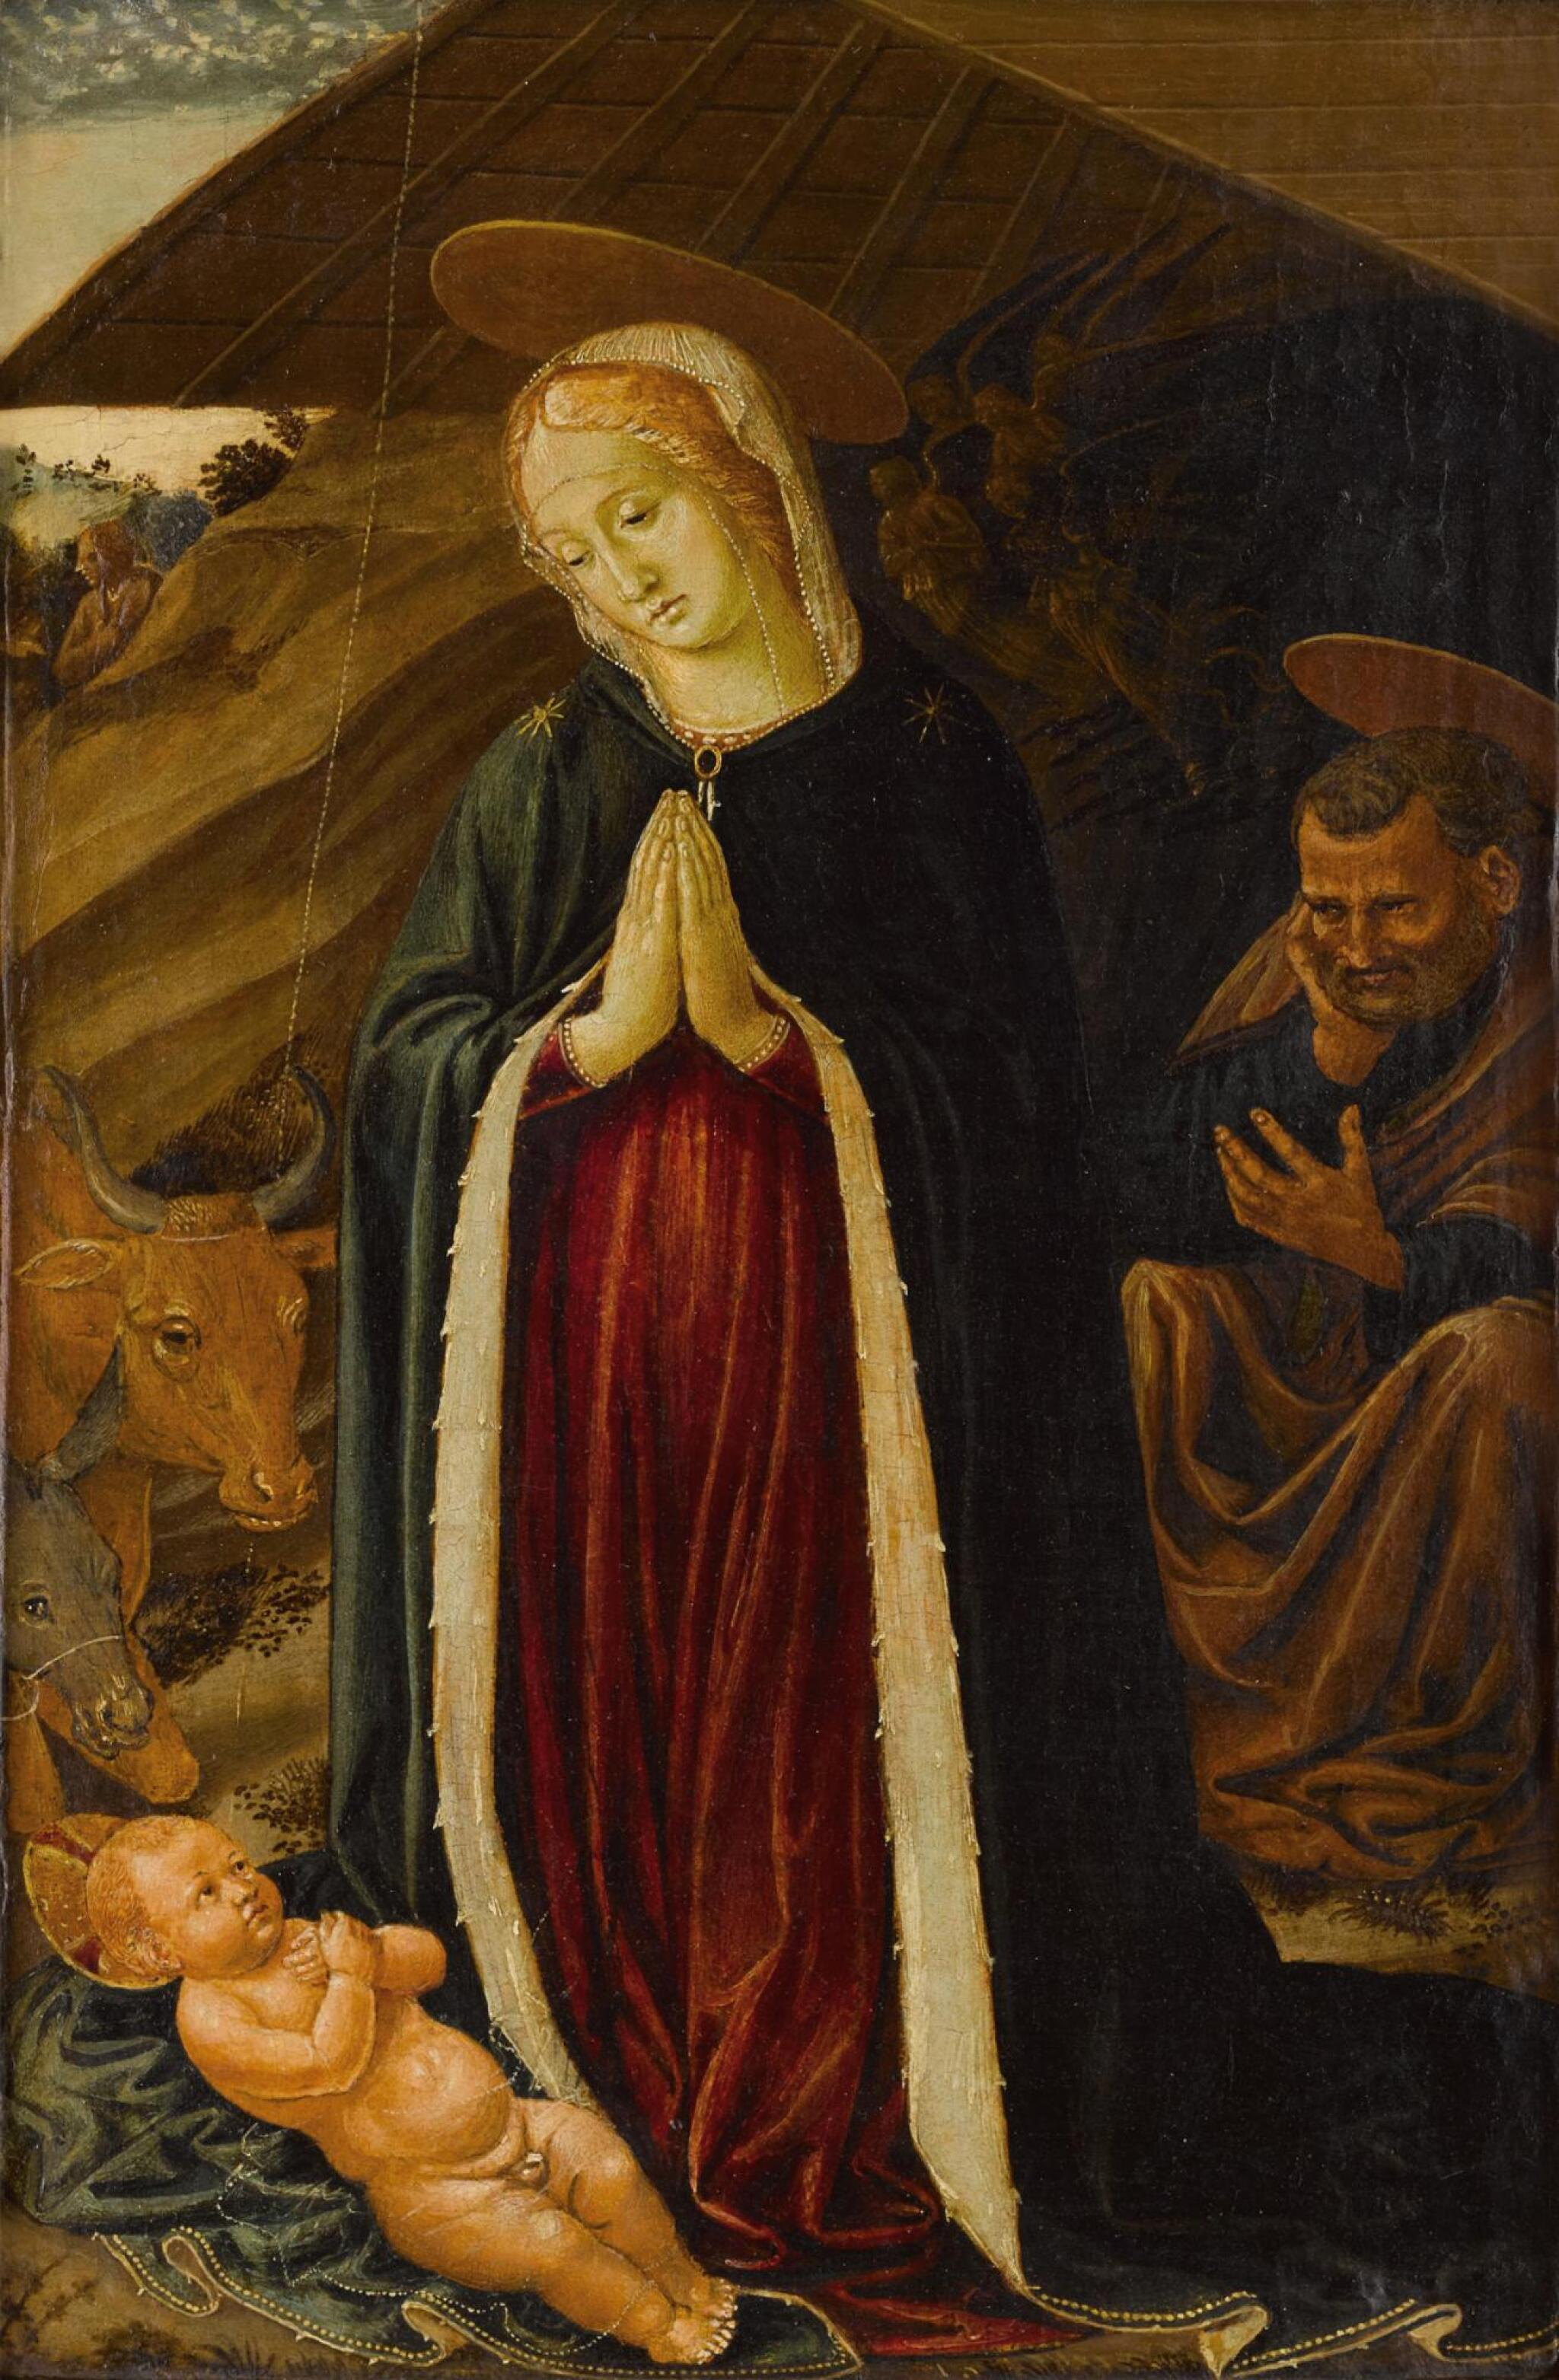 View full screen - View 1 of Lot 10. The Adoration of the Christ Child.